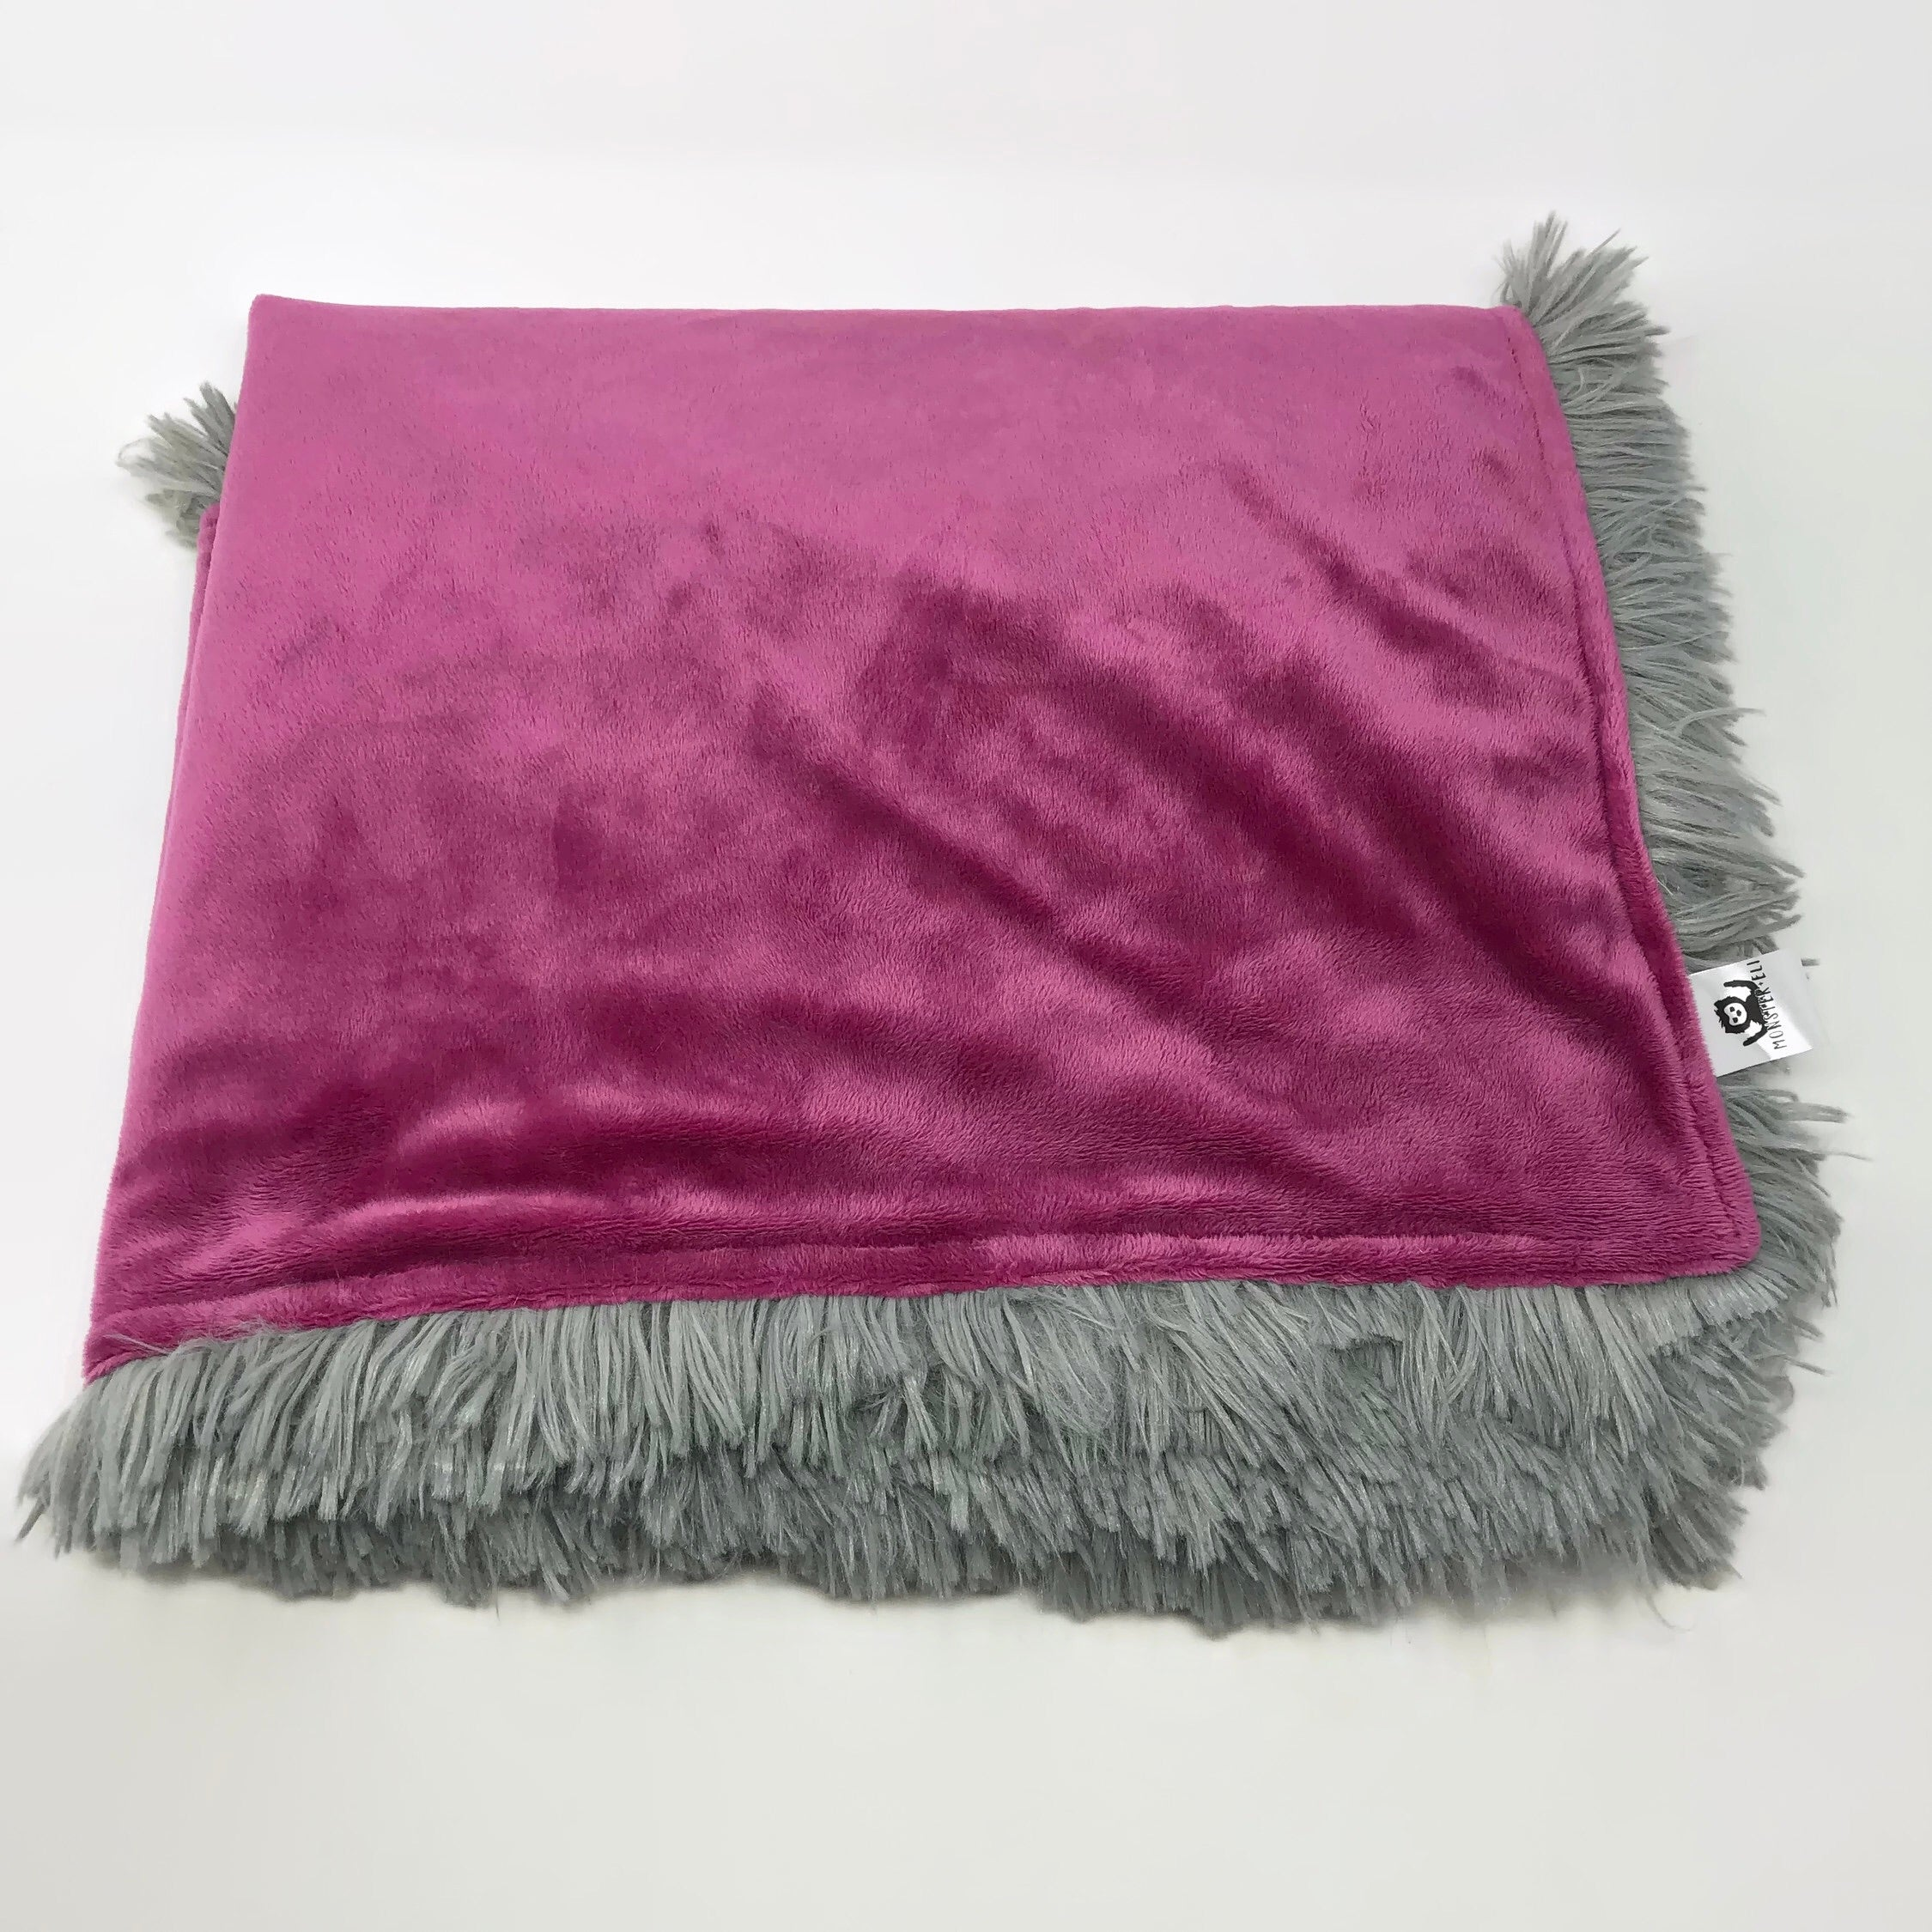 Smooth Raspberry & Minky Shag Blanket